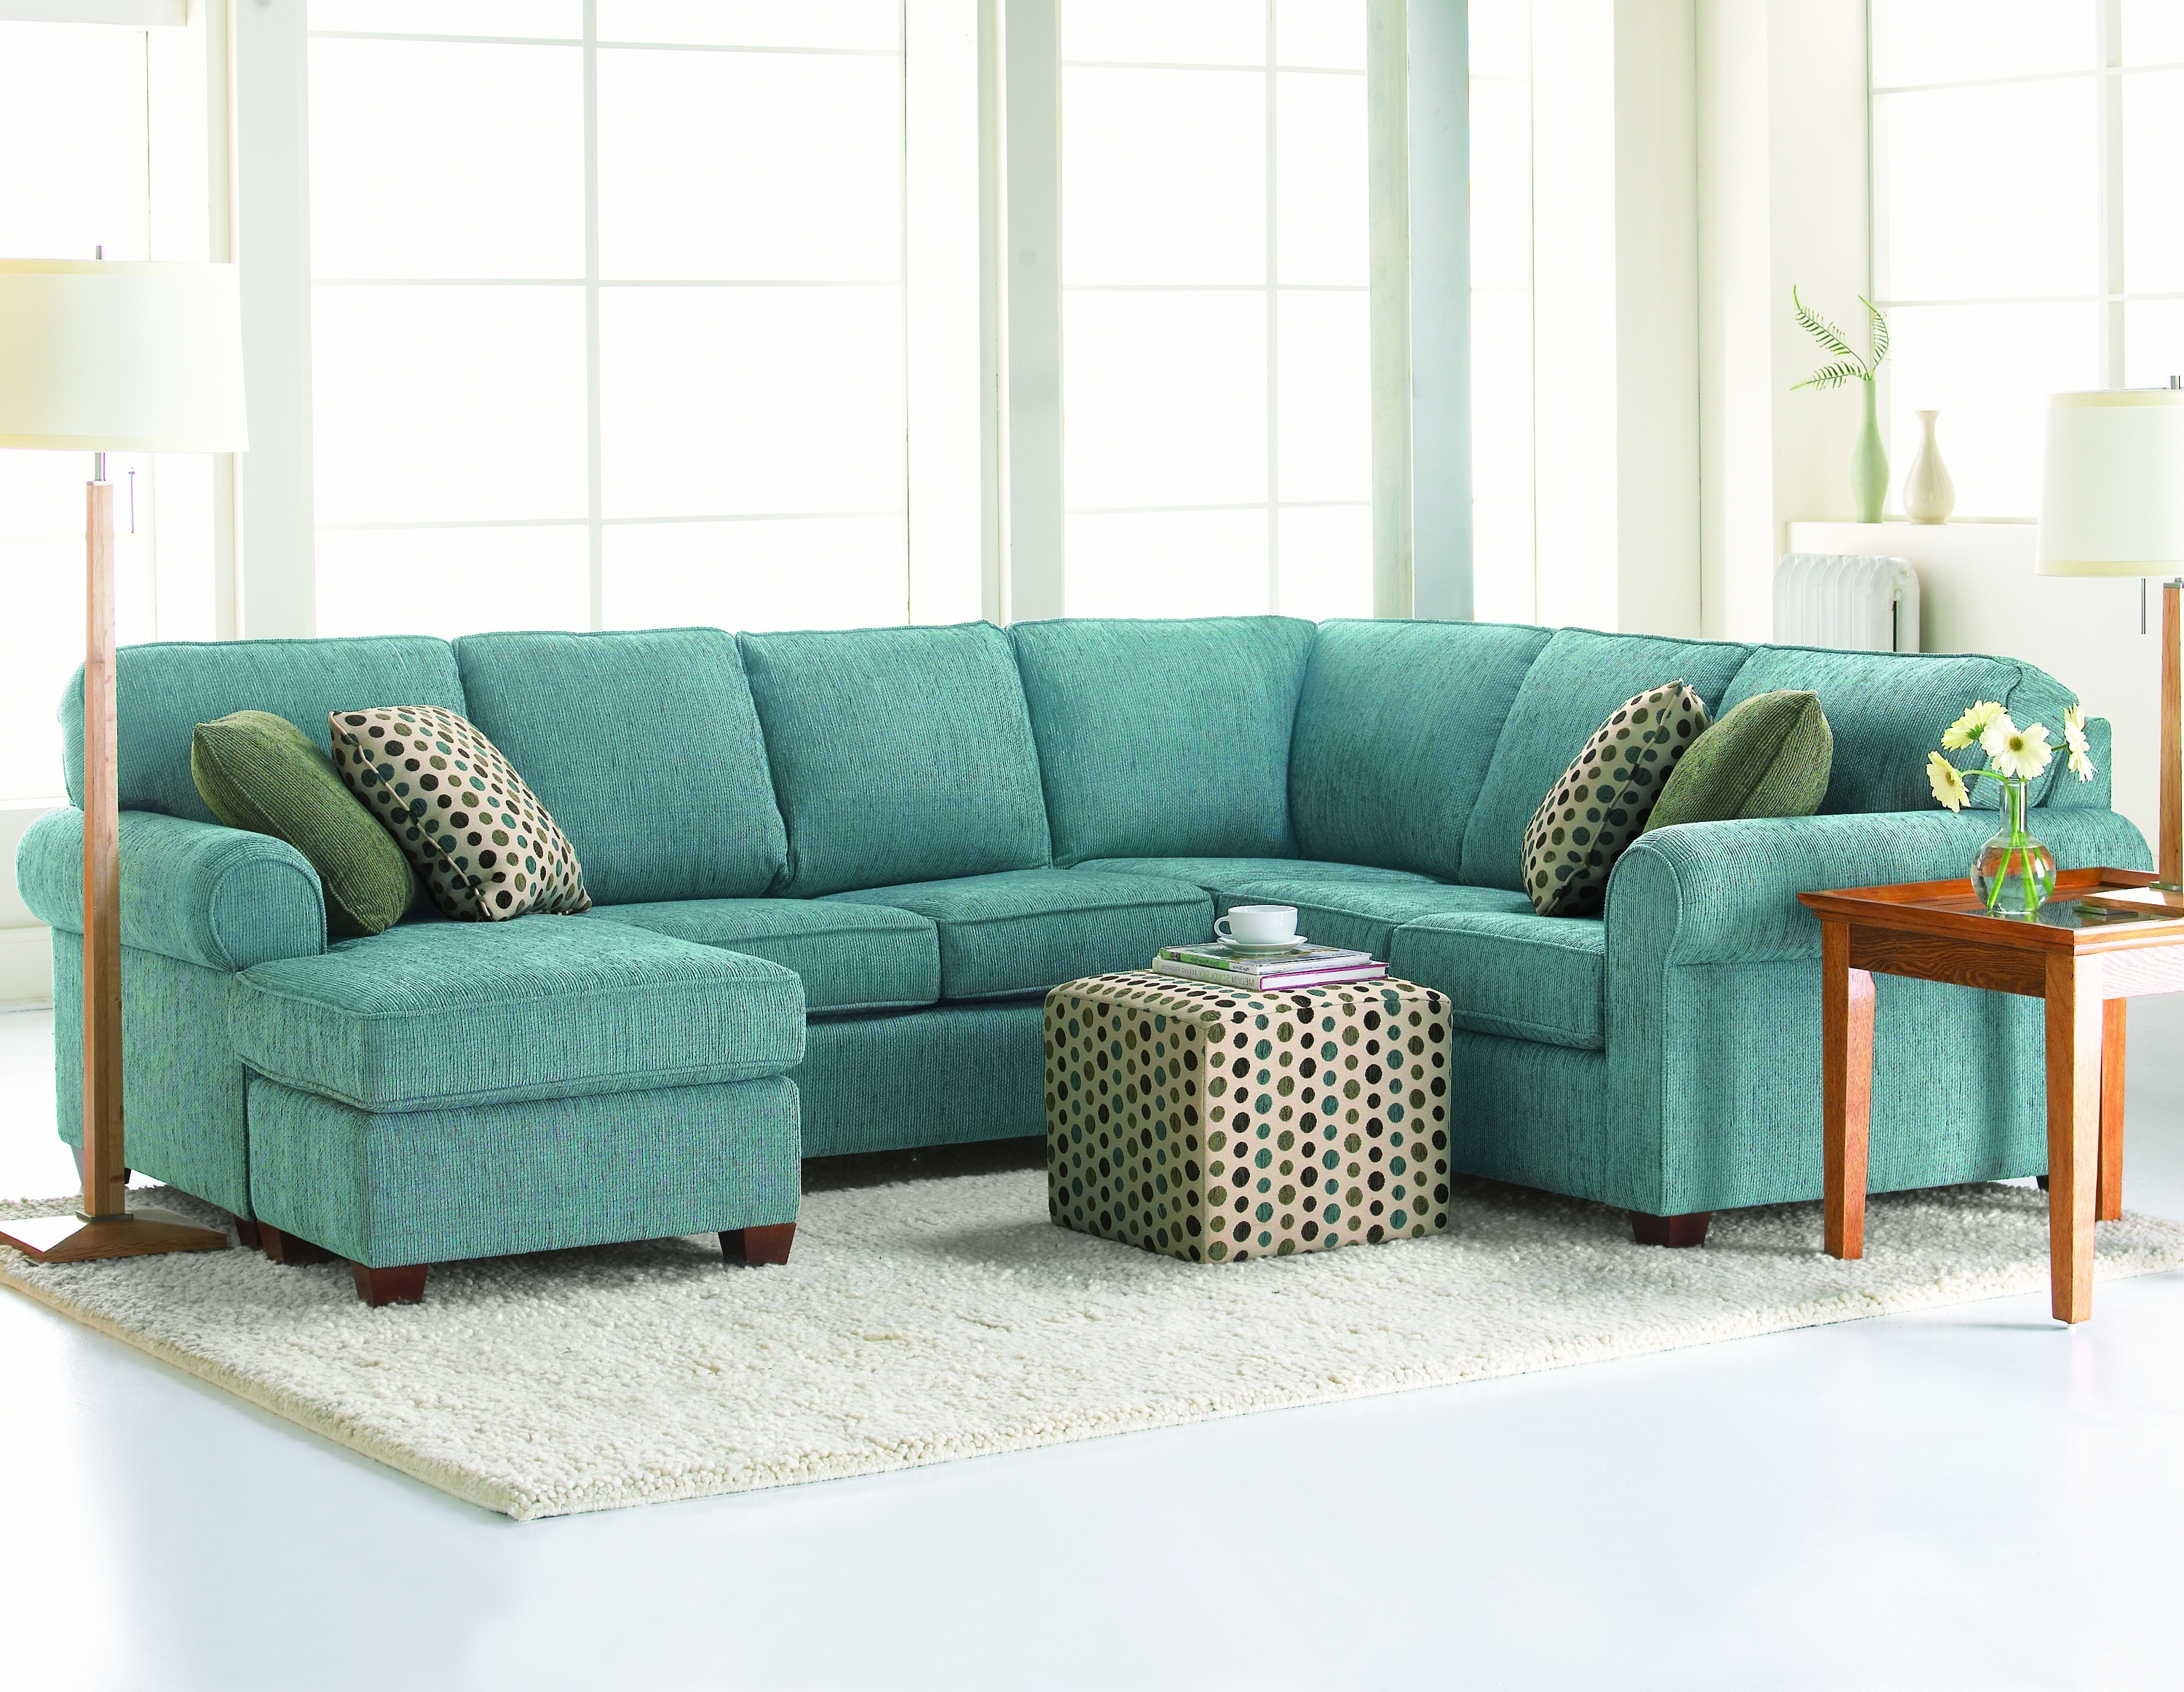 2017 Ontario Canada Sectional Sofas Inside Sectional Sofas – Thompson Brothers Furniture (View 1 of 15)